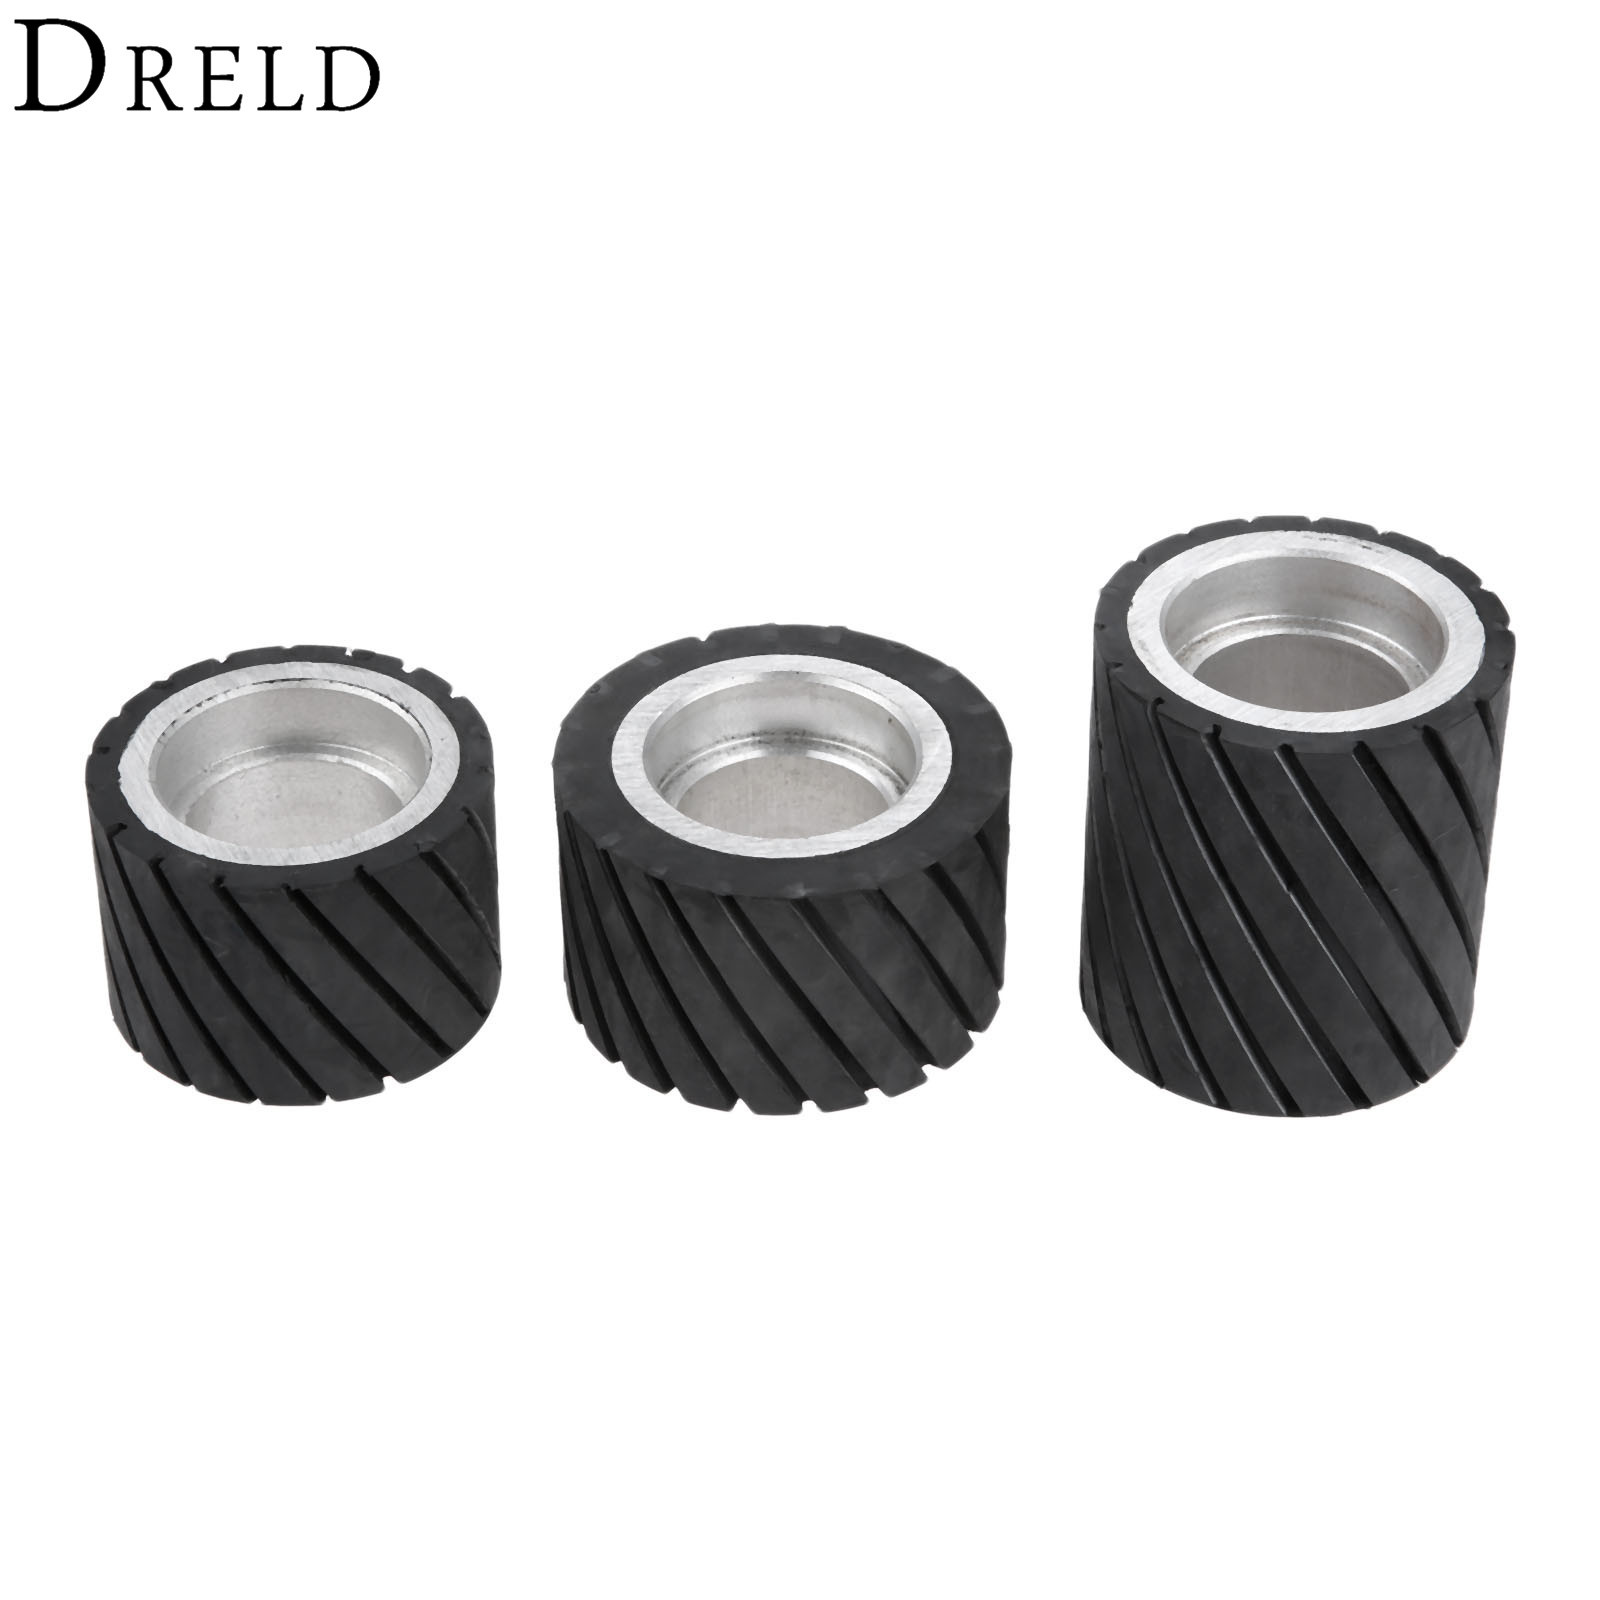 DRELD 70*50mm 80*50mm 70*80mm Belt Grinder Rubber Contact Wheel Abrasive Sanding Belt Set Polishing Grinding Sanding Wheel